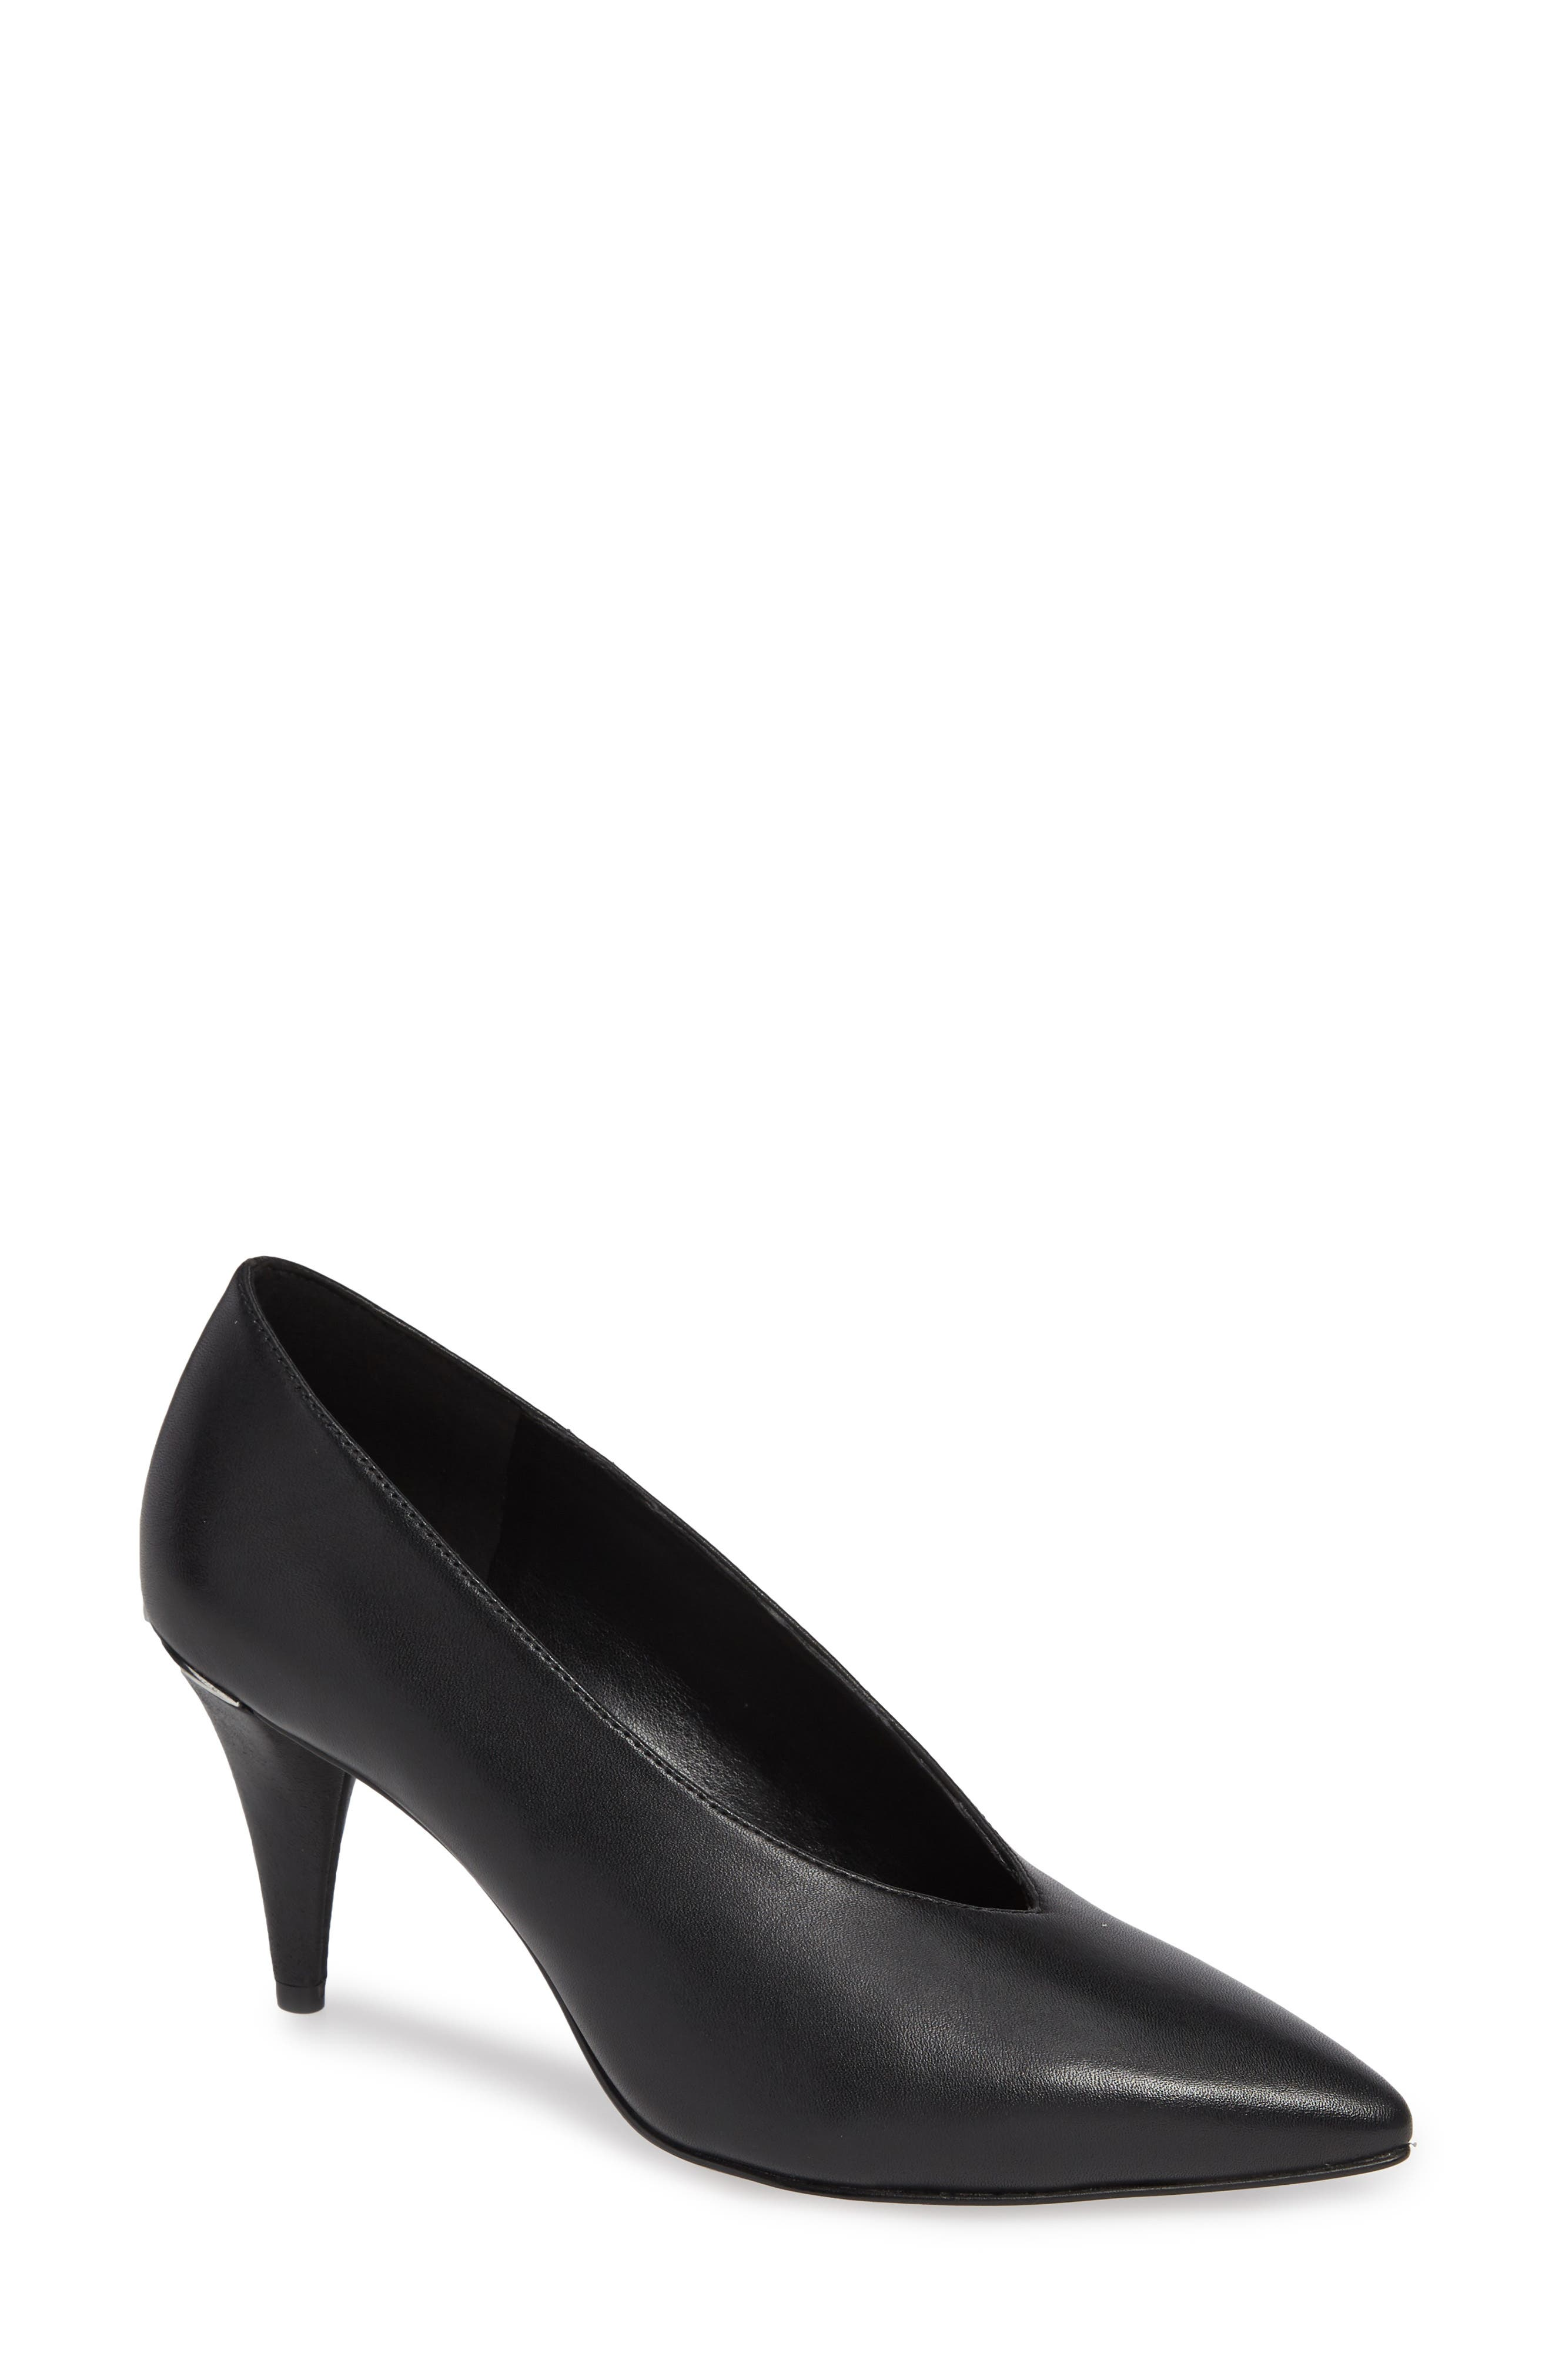 MICHAEL MICHAEL KORS Lizzy Pointed Toe Pump, Main, color, 001